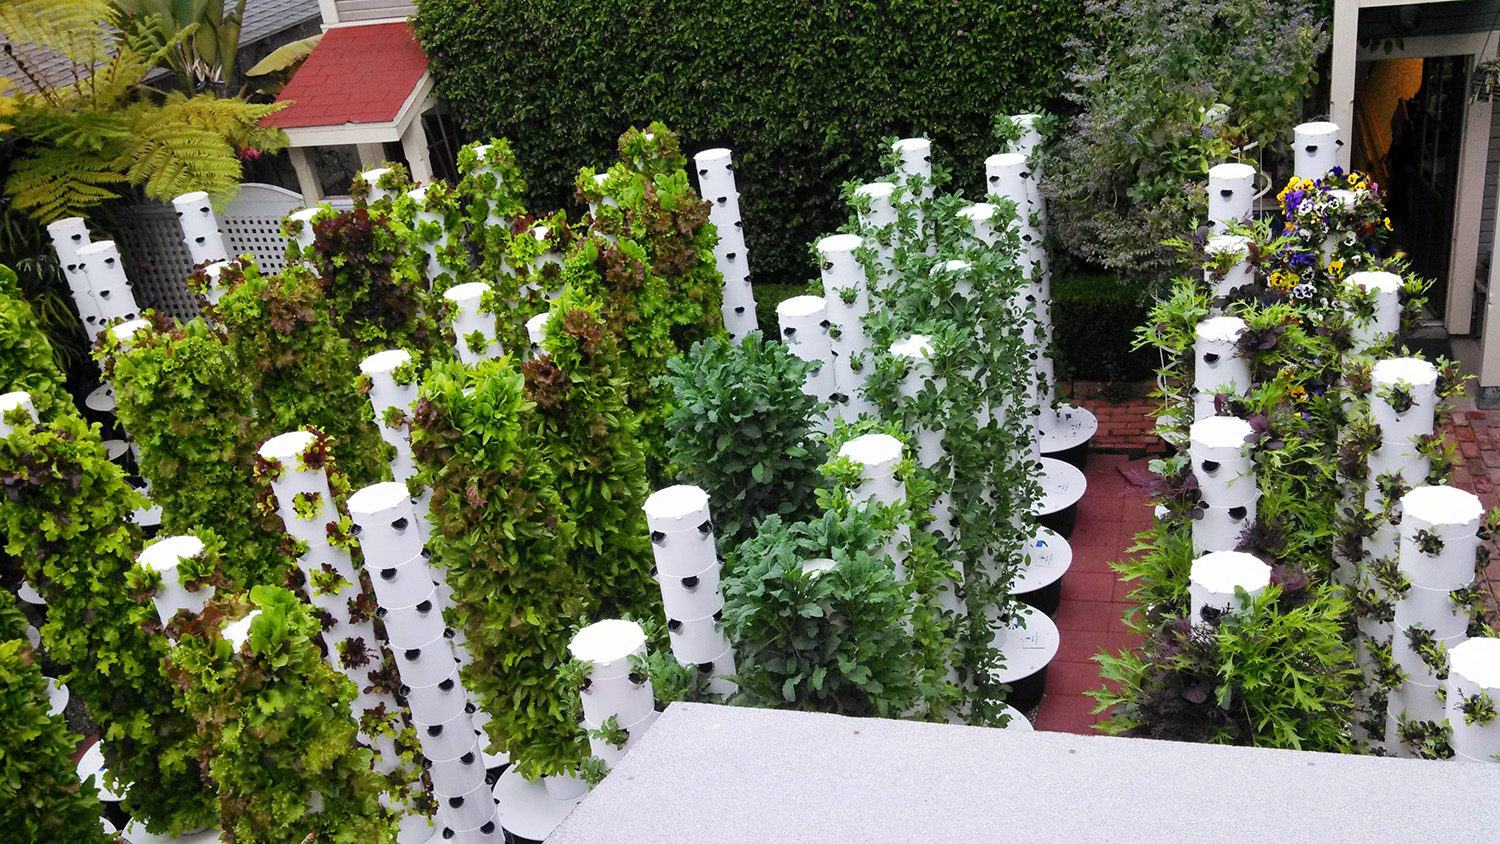 Fullsize Of Backyard Vertical Garden